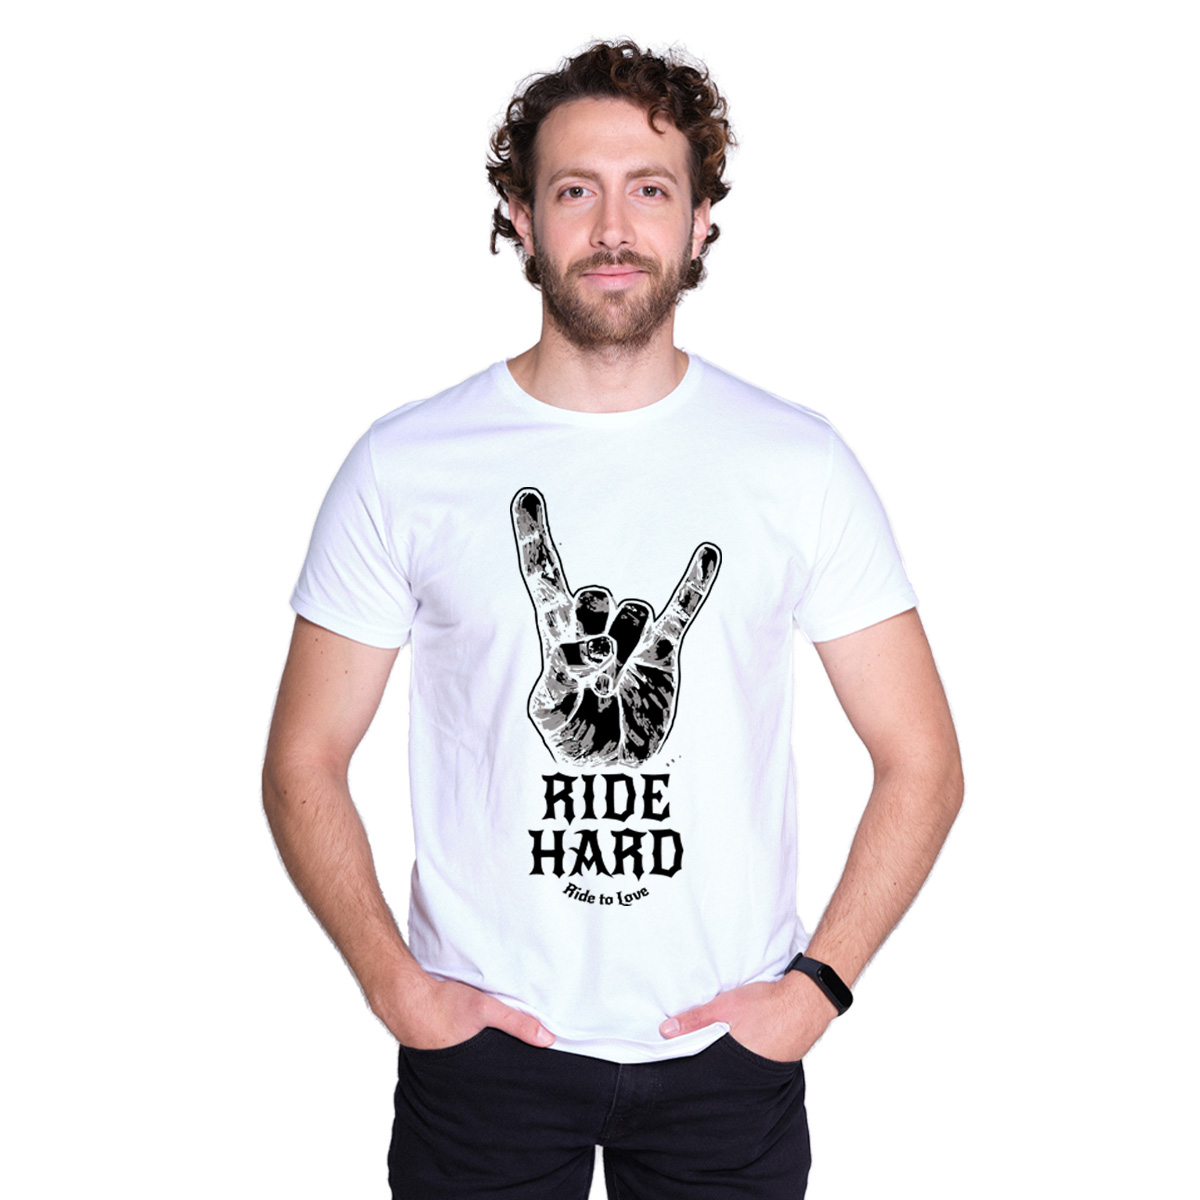 Ride to Love - Ride Hard Motorcycle